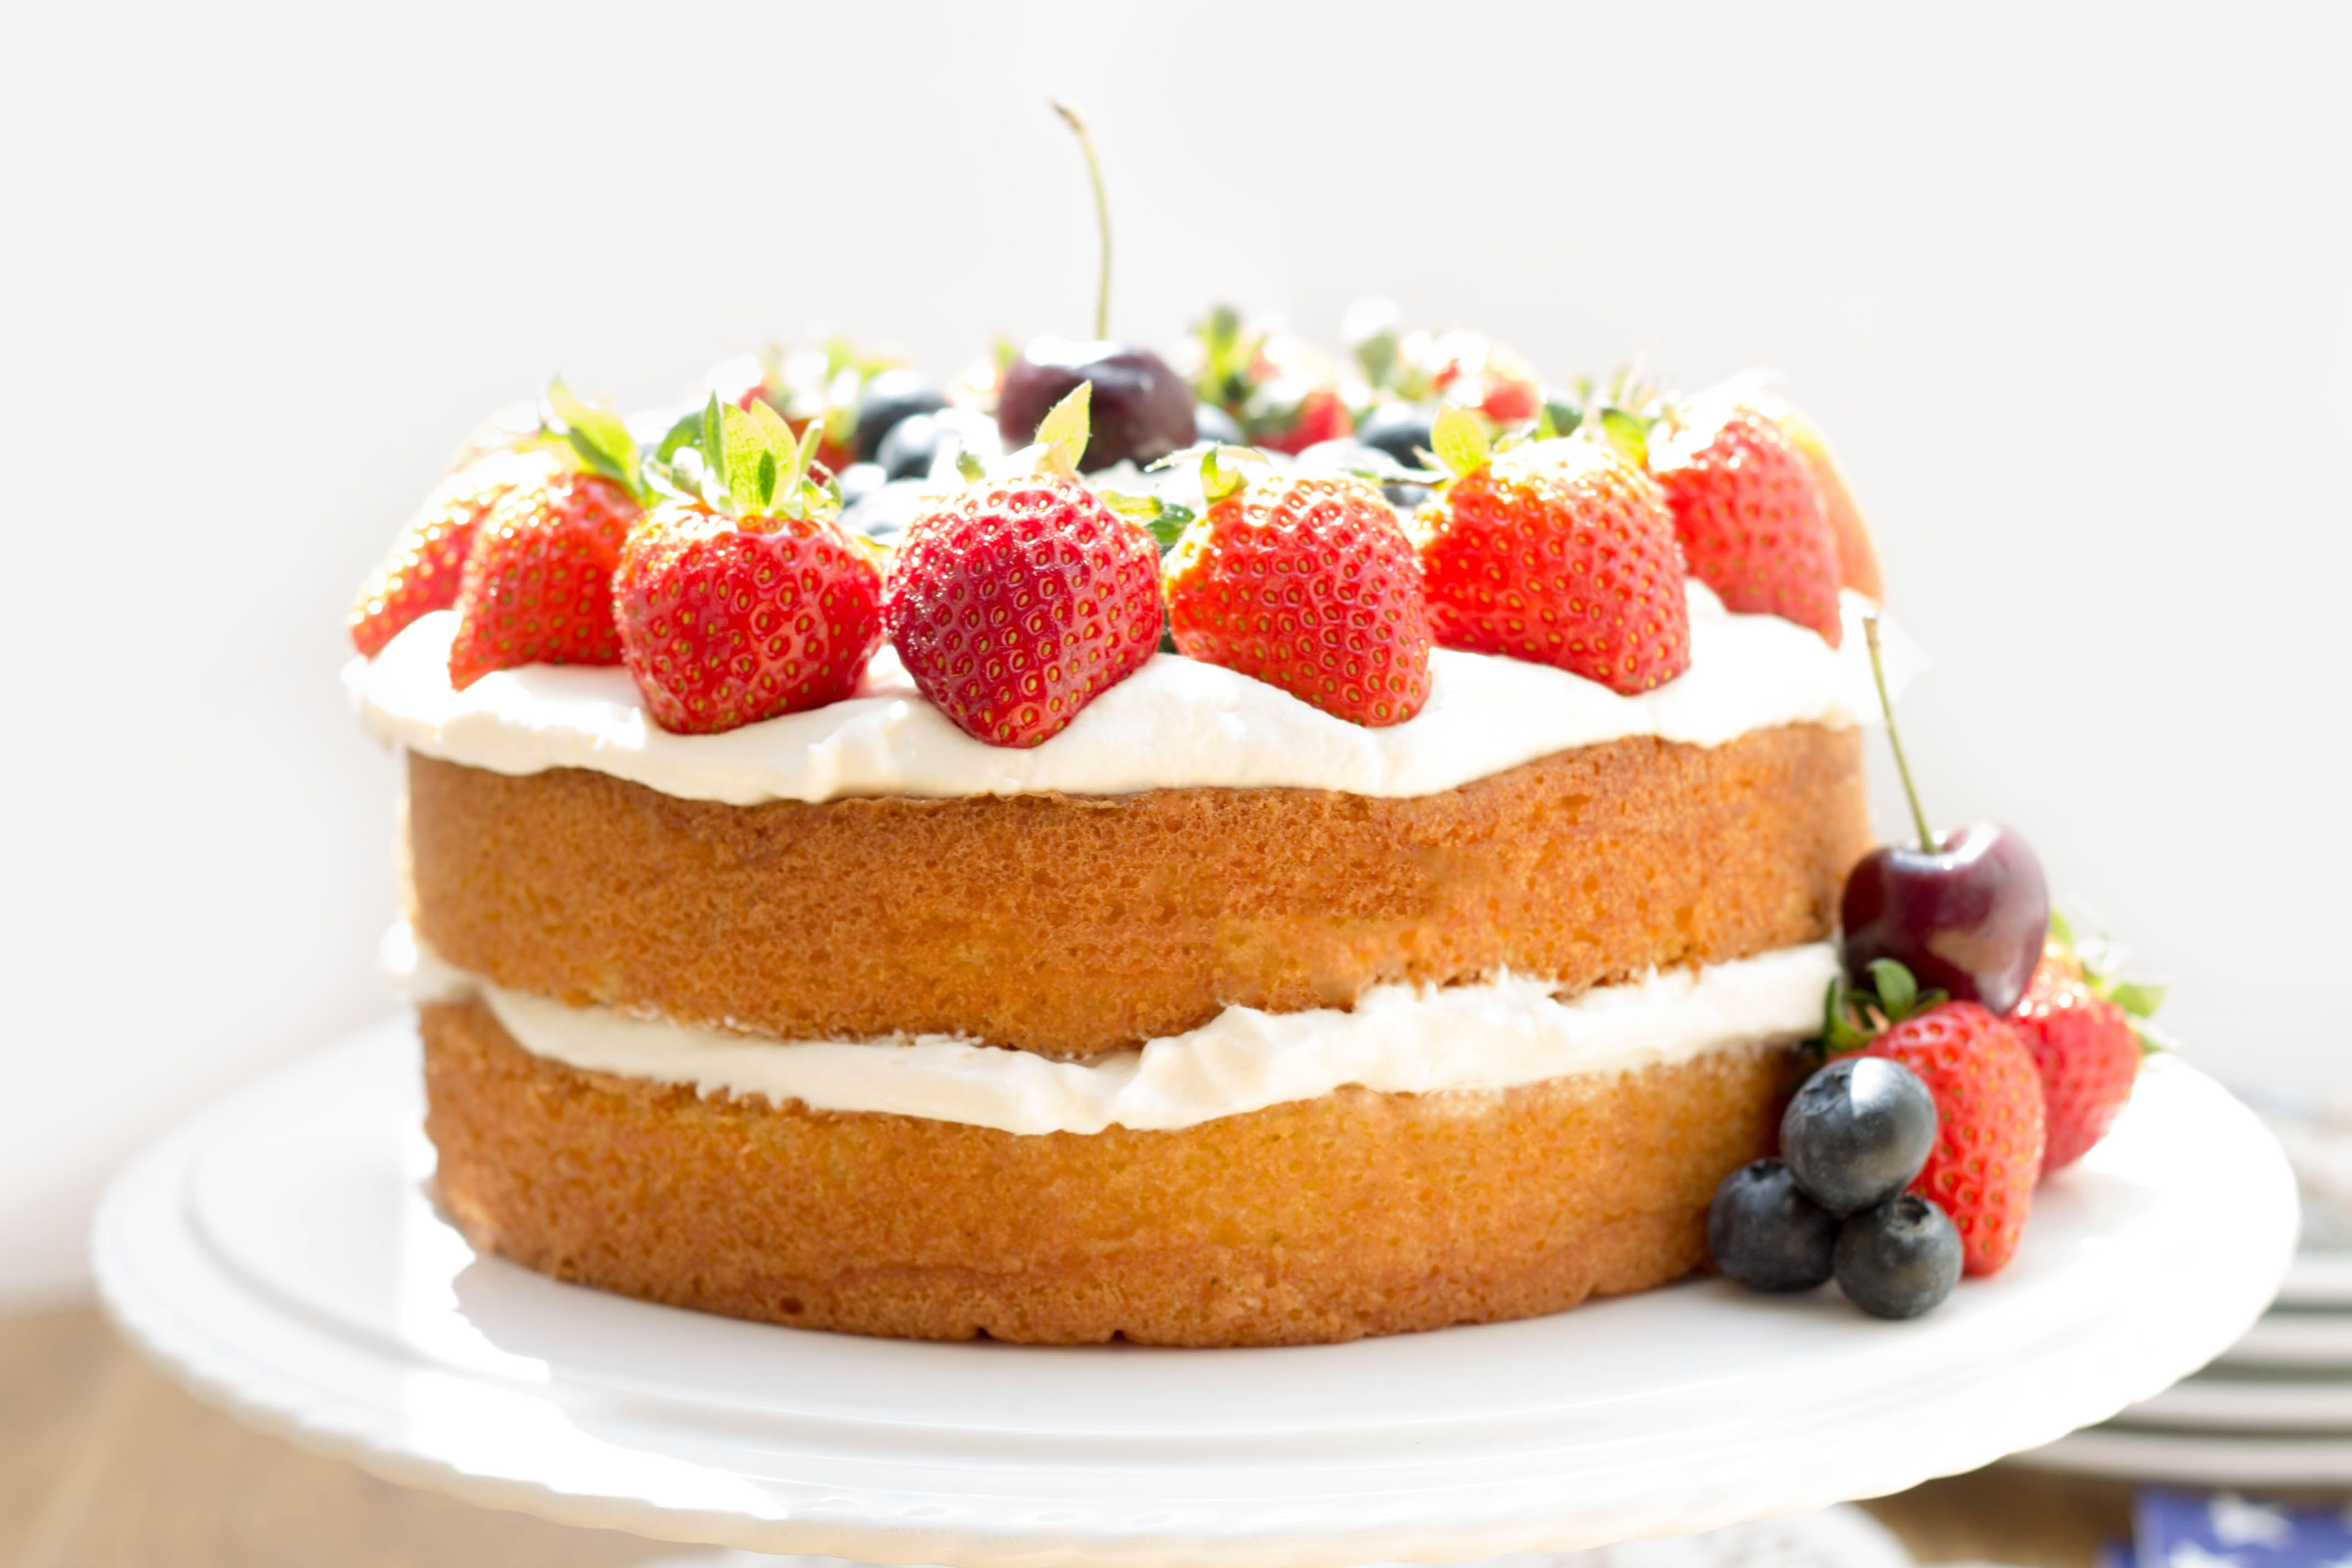 Discussion on this topic: How to Make a Vanilla Sponge Cake, how-to-make-a-vanilla-sponge-cake/